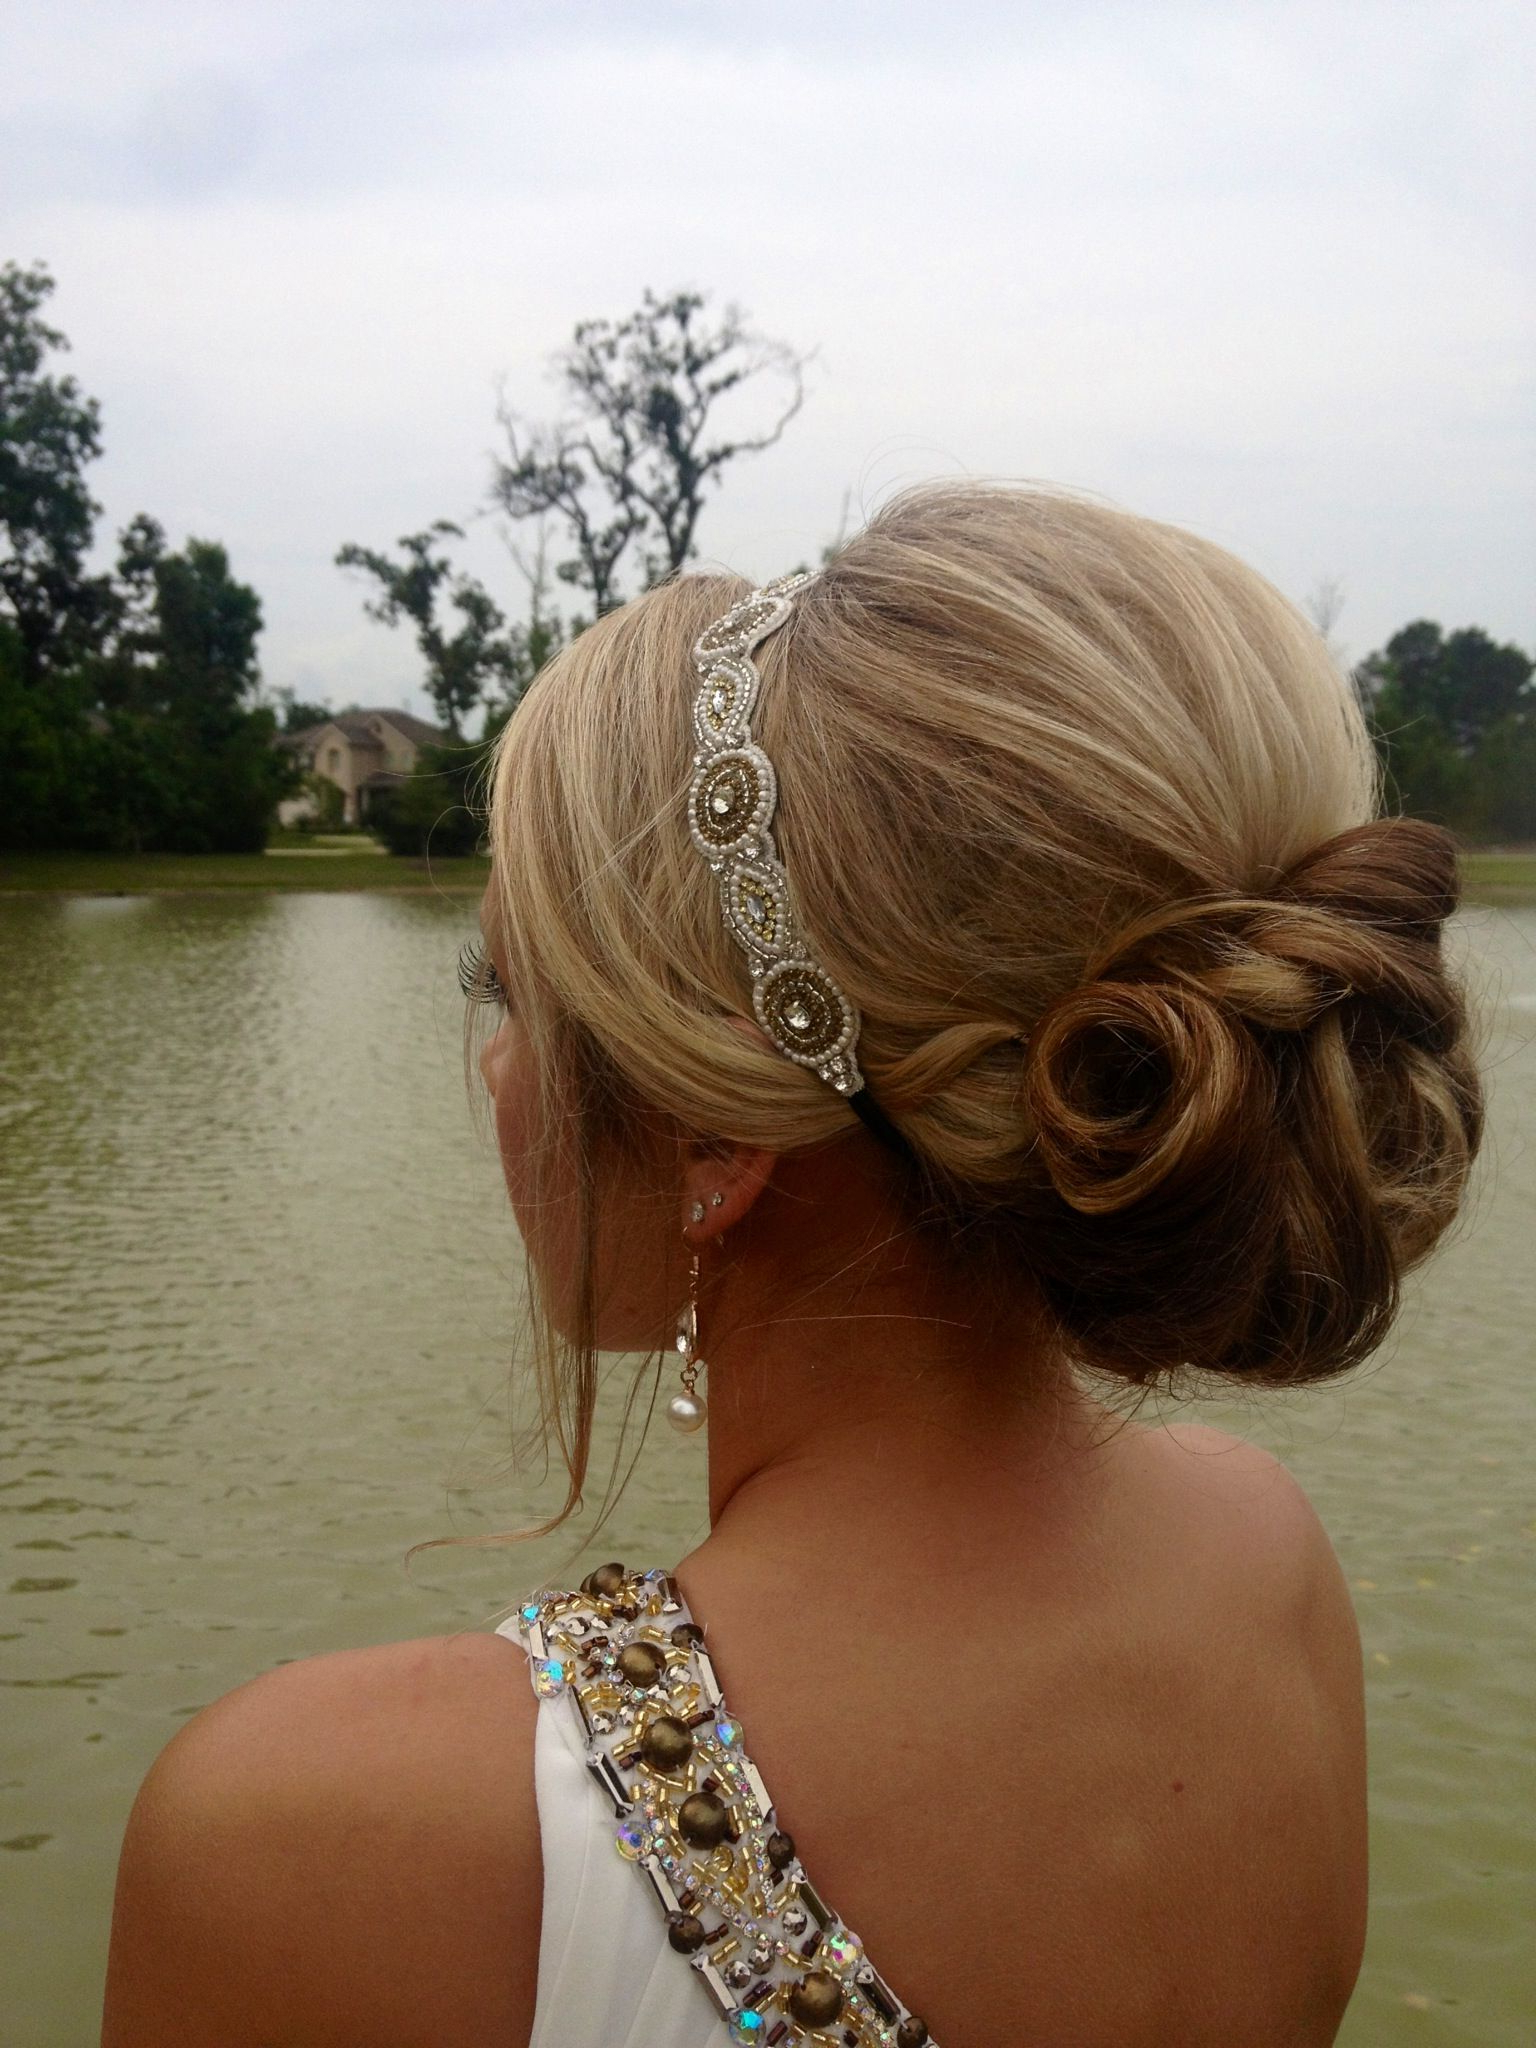 I Want A Band Like This To Keep My Bangs Out Of My Face With Inside Famous Blinged Out Bun Updo Hairstyles (View 12 of 20)